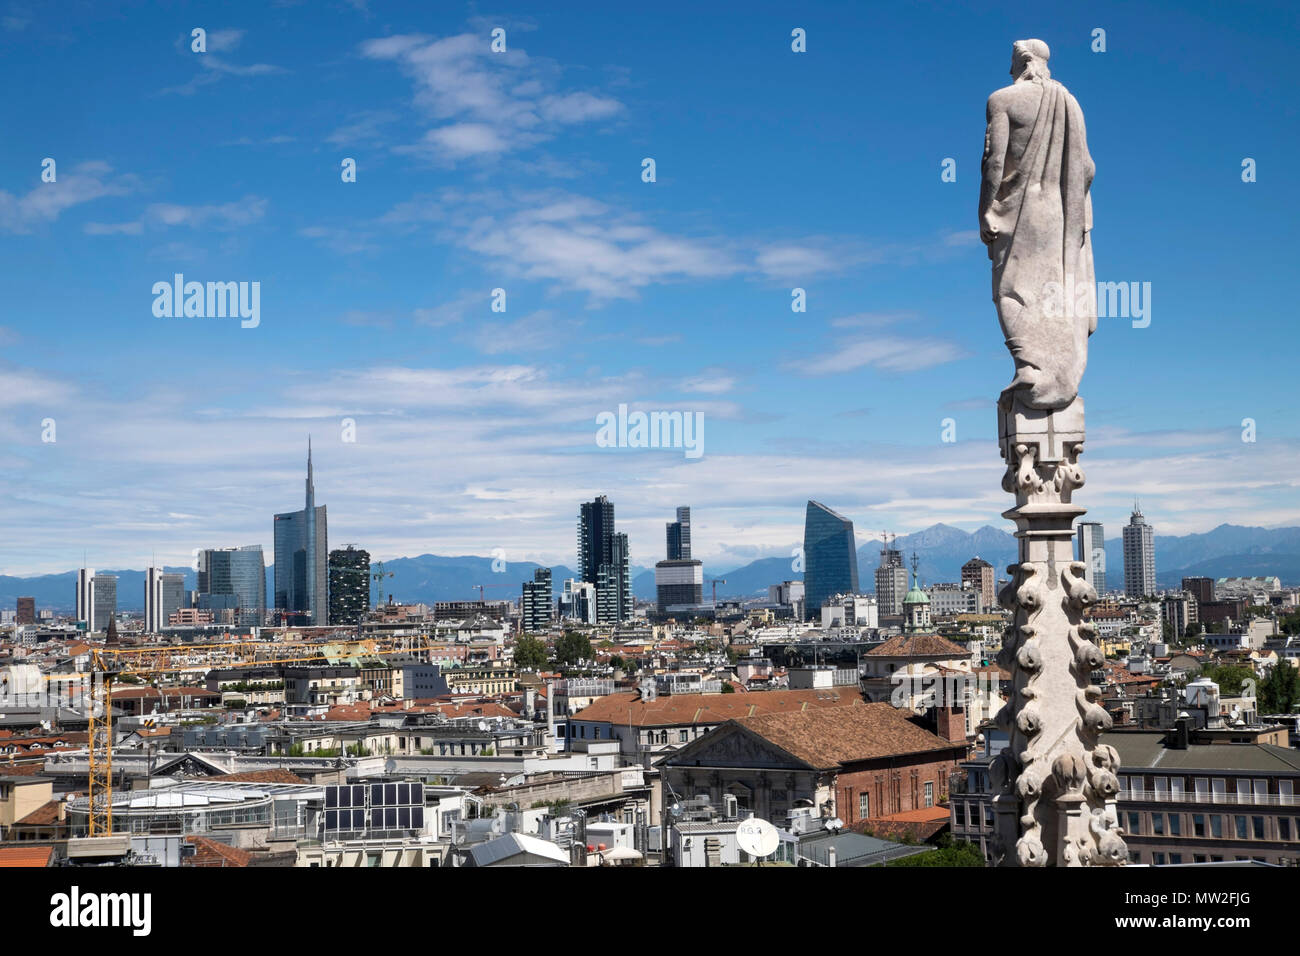 Italy, Lombardy, Milan: the city viewed from the cathedral (Duomo di Milano) - Stock Image